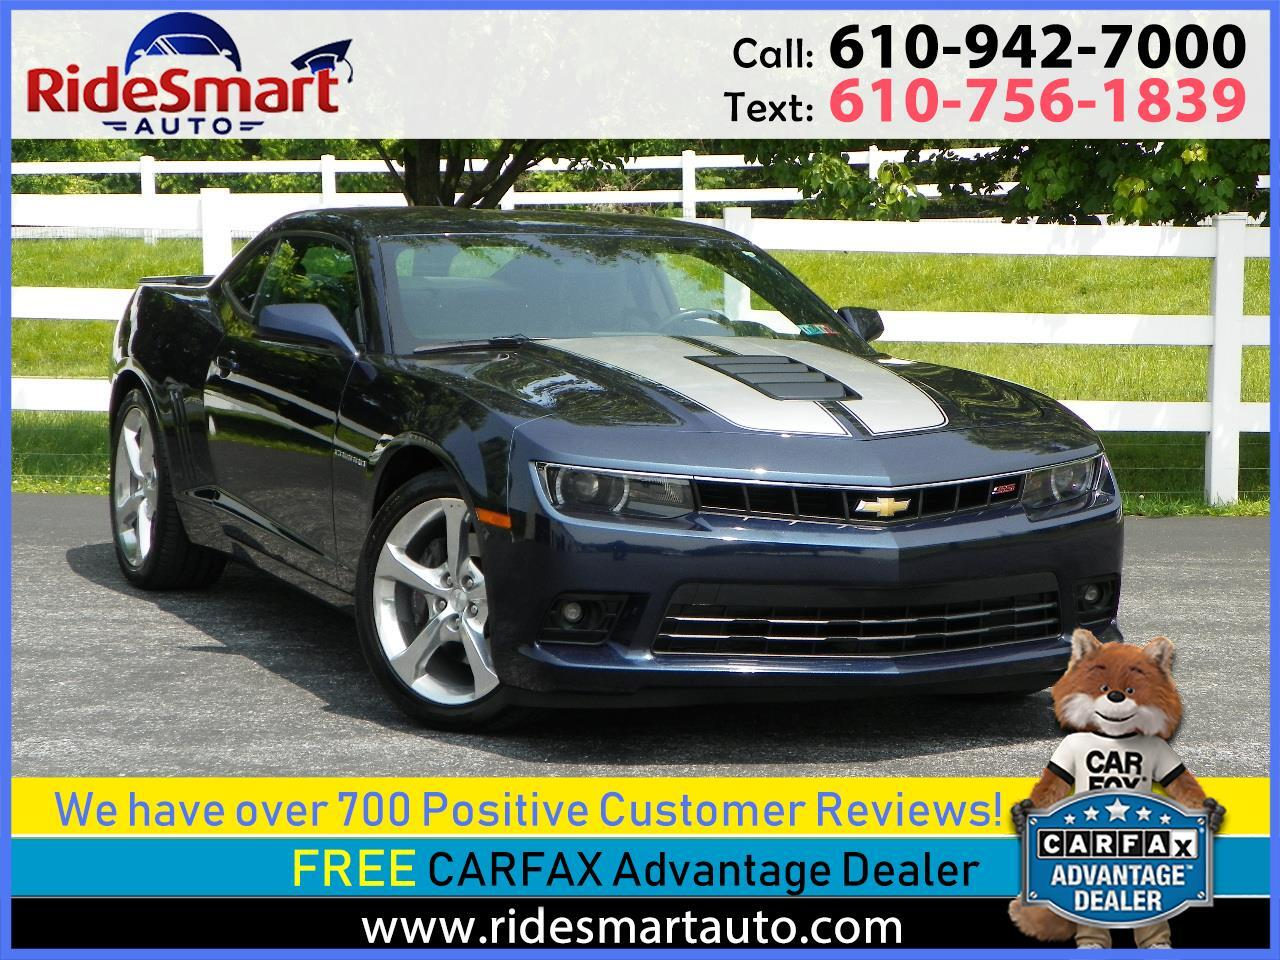 2015 Chevrolet Camaro 2SS Coupe w/RS & Performance Pkg